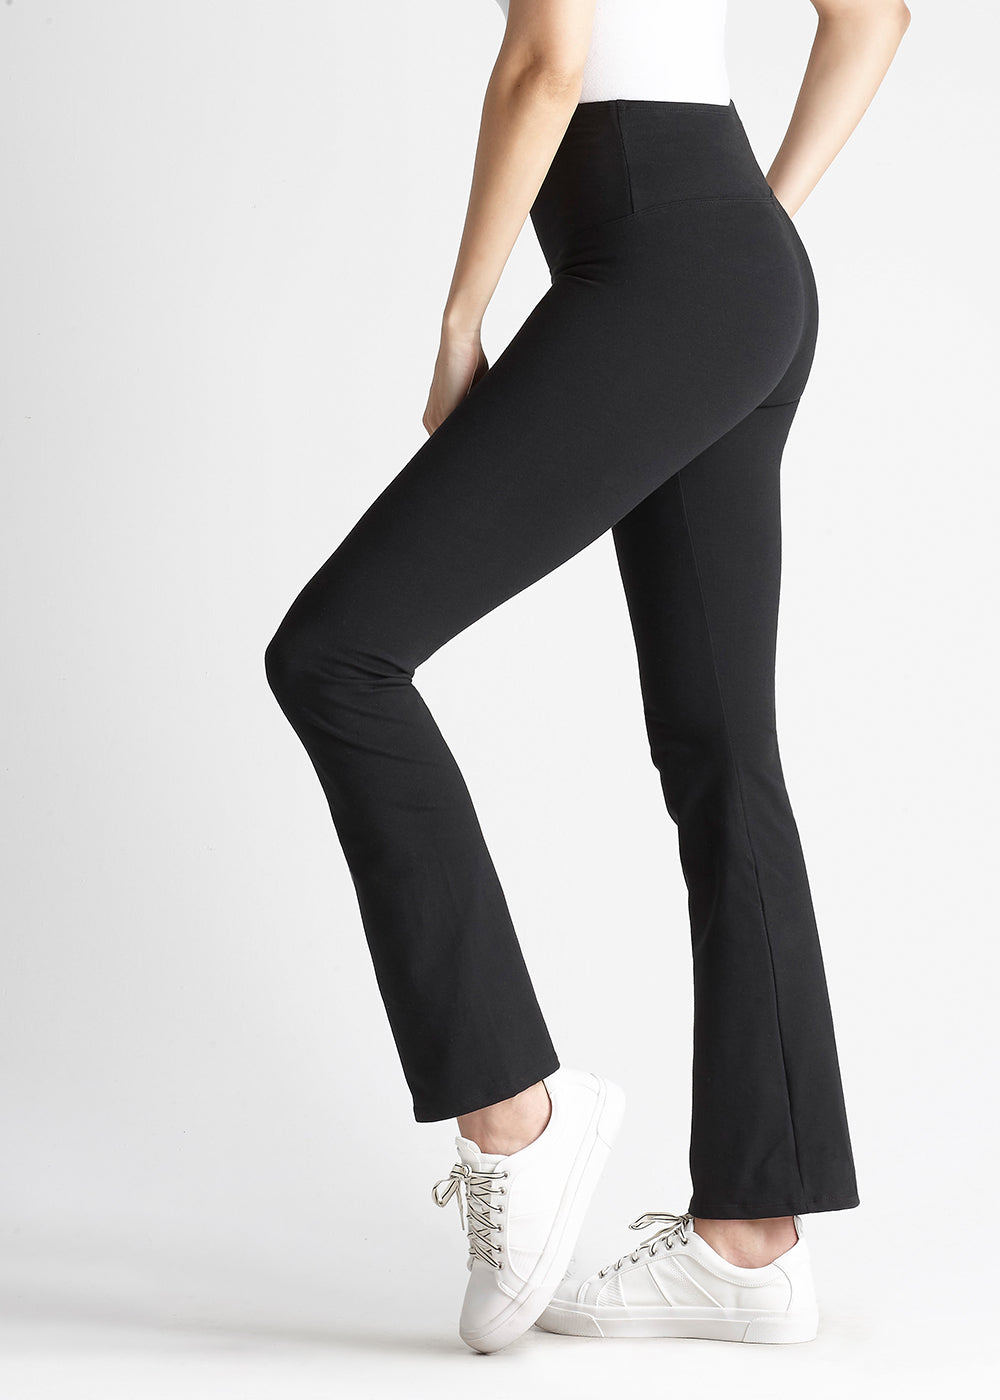 Yummie Jodi Slim Bootcut Cotton Stretch Shaping Legging